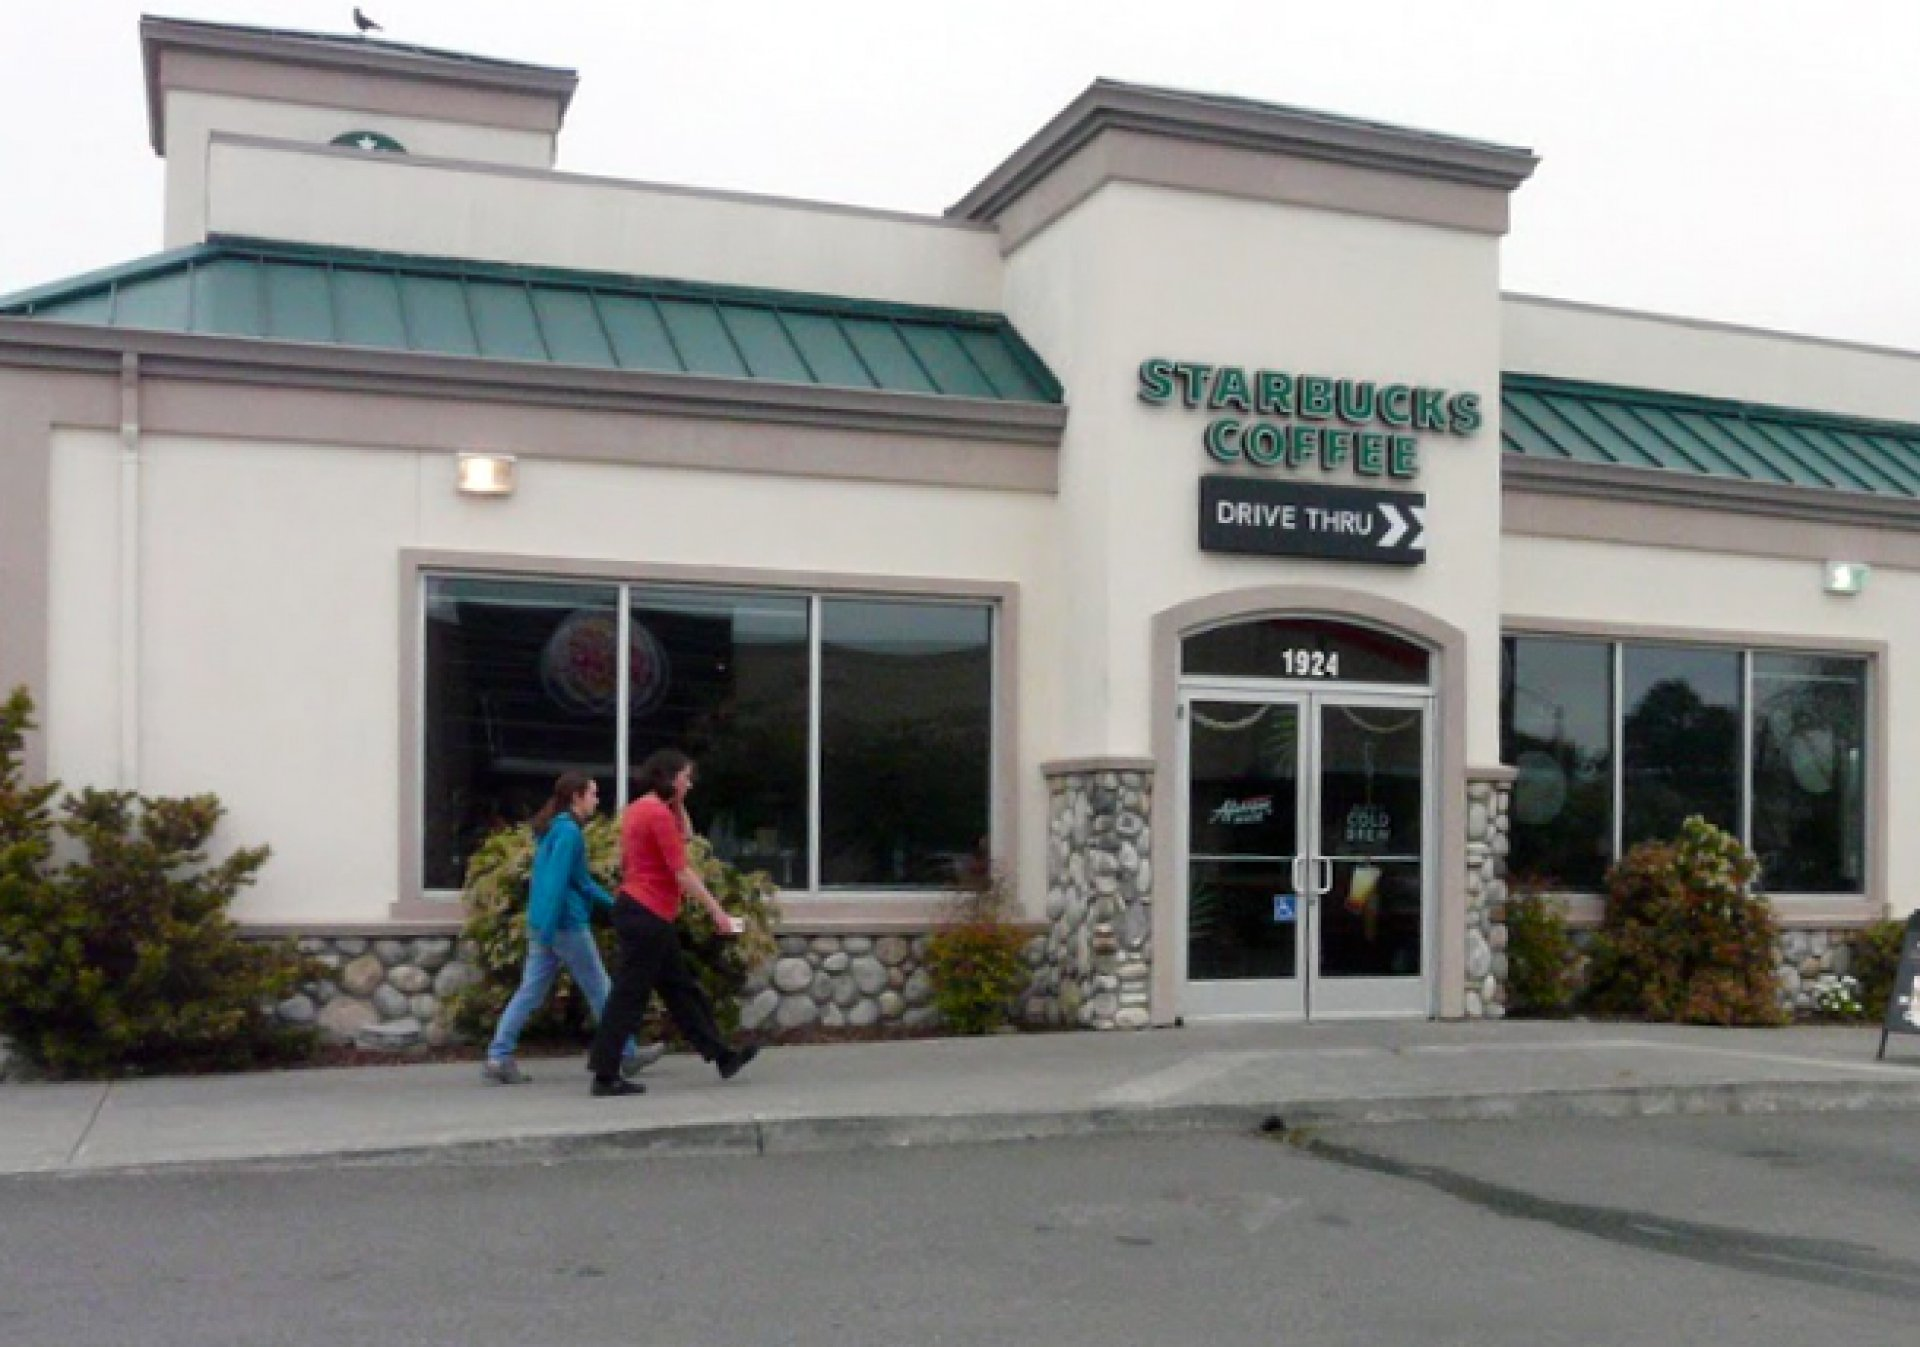 Customers make their way into Starbucks in McKinleyville. Photo by Matthew Hable.